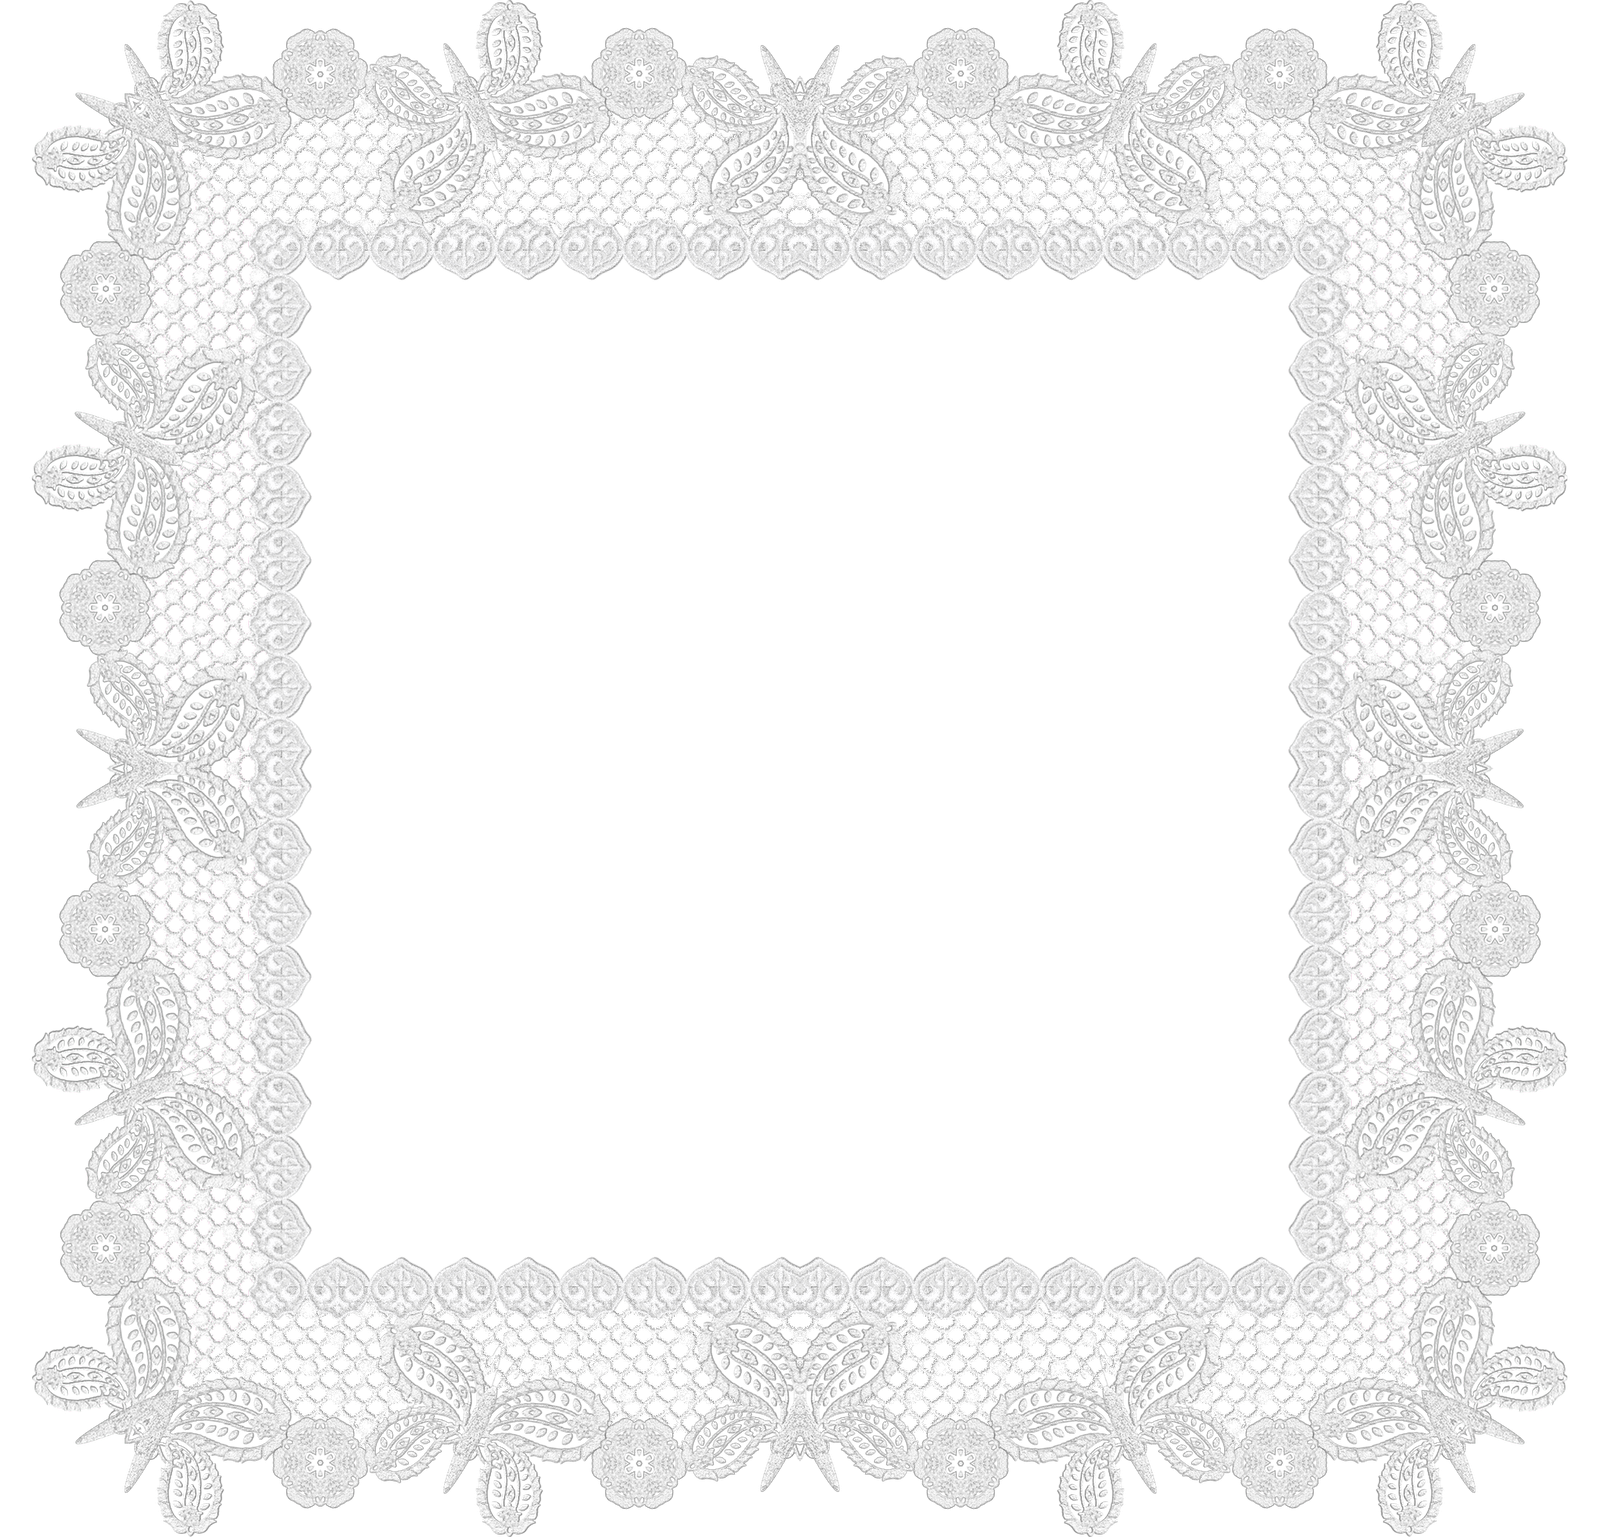 Free frames and borders. Lace frame png